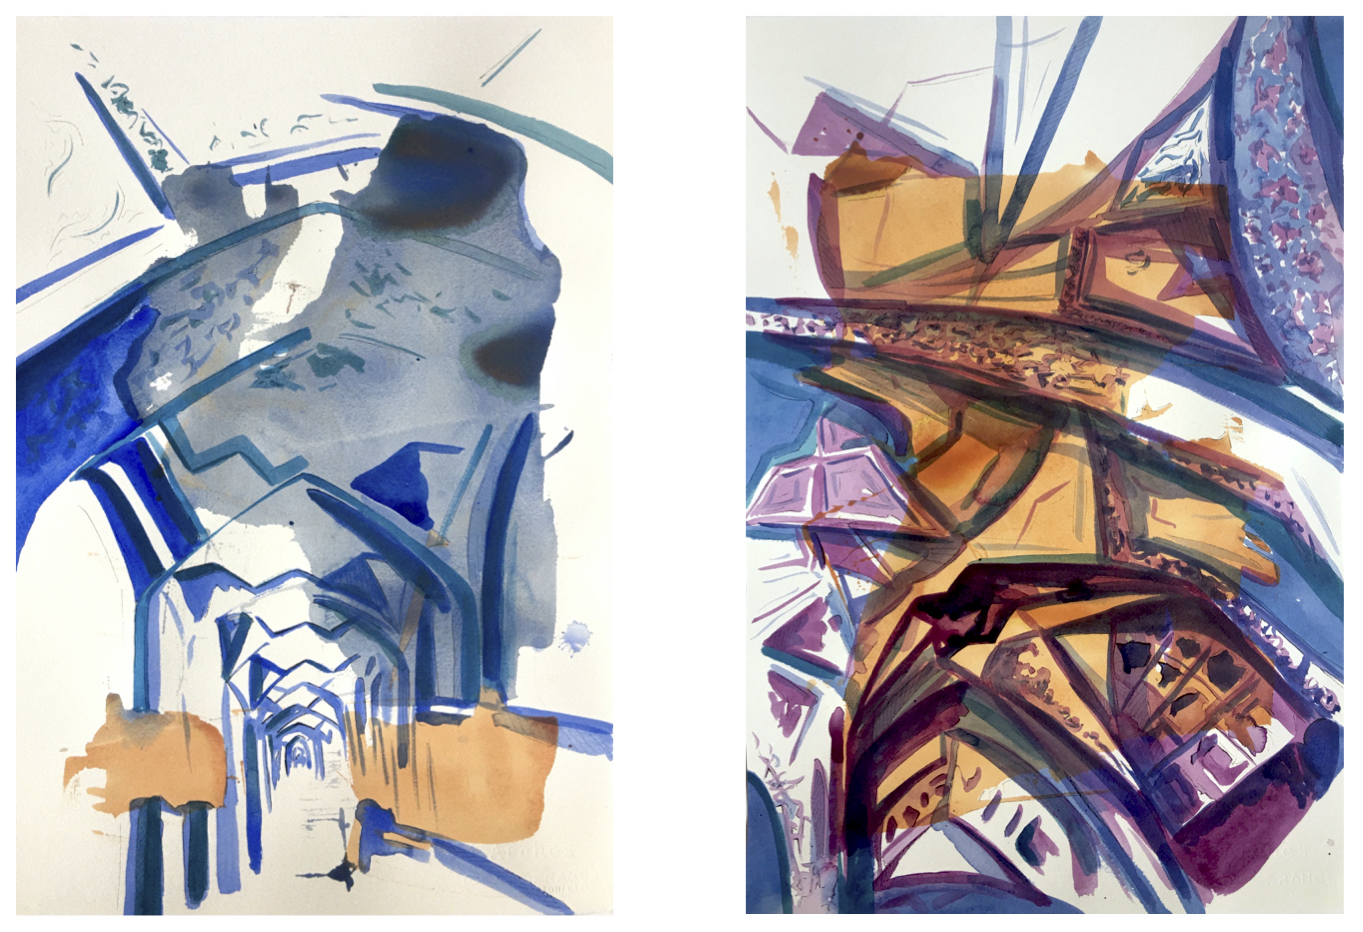 Elements of Design, acrylic on paper, 22x15 inches each, 2020